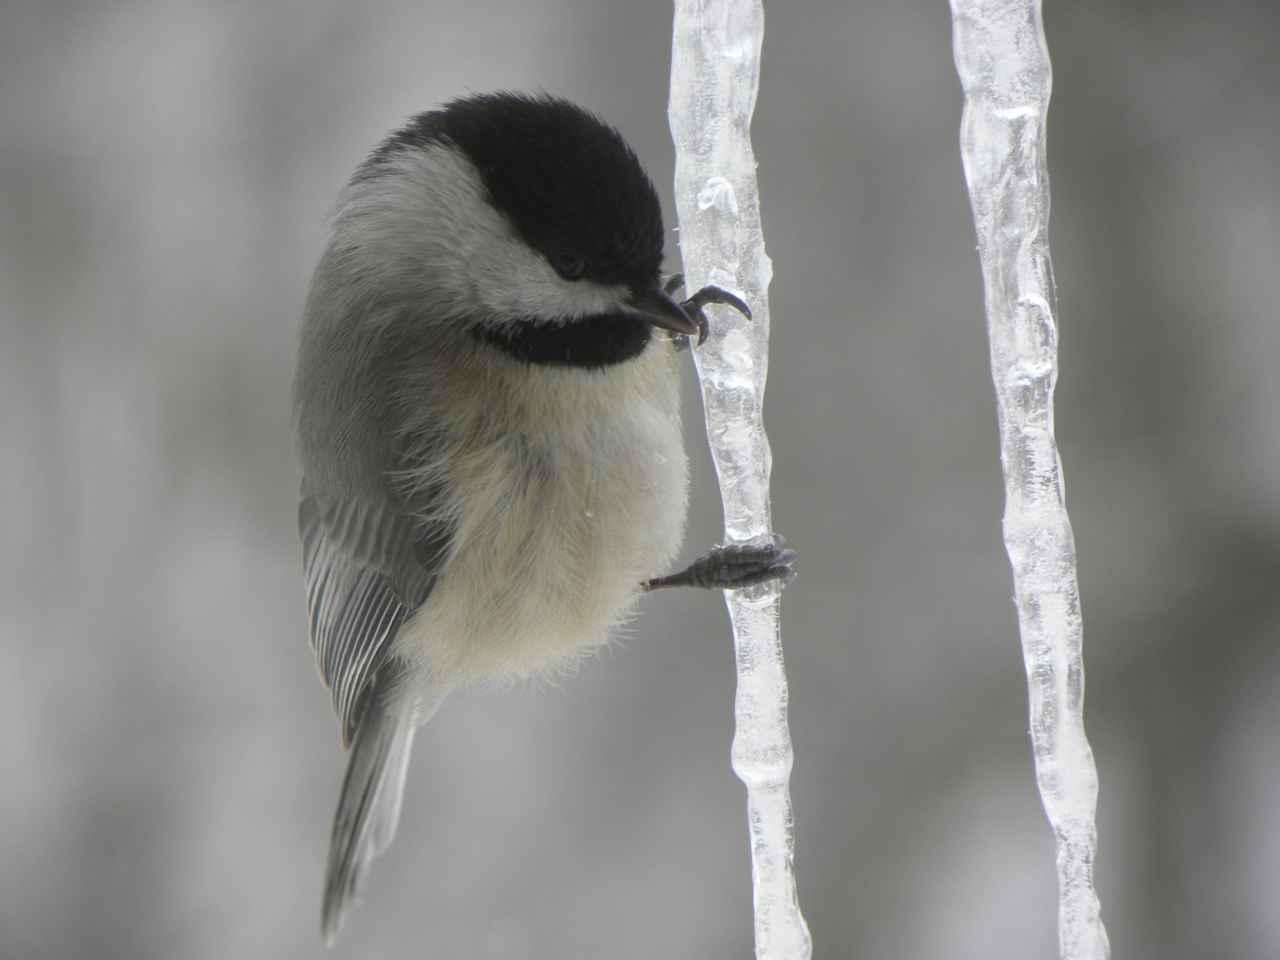 Semi-finalist entry. Justin Polacek: Carolina Chickadee near St. Joe. Monroe County.